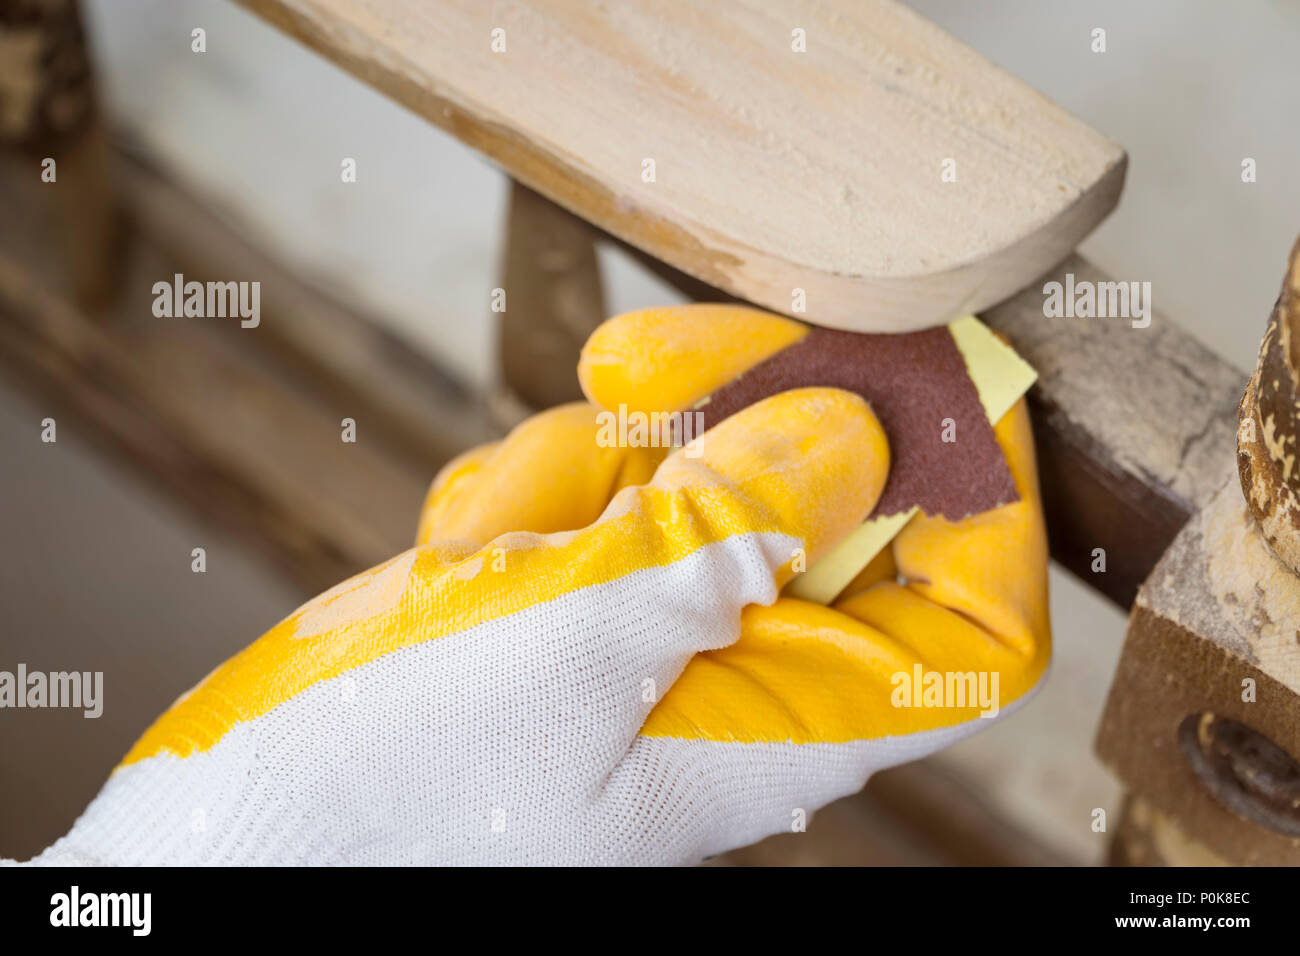 Sanding The Paint Of An Old Furniture - Stock Image